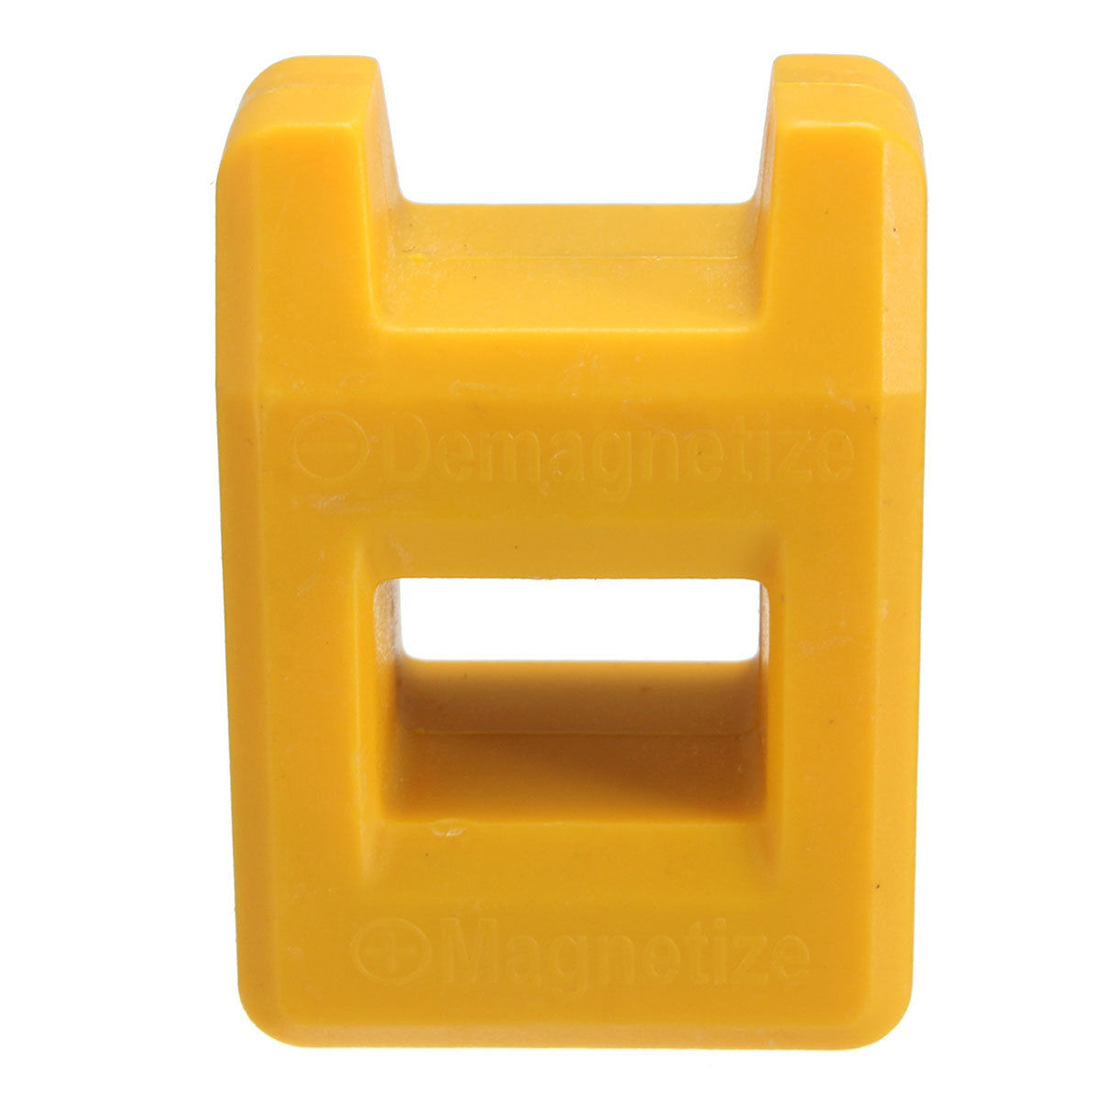 New Style Screwdriver Magnetizer Degaussing Demagnetizer Magnetic Practical Pick Up Tool Color:Yellow magnetizer demagnetizer ware magnetic pick up tool screwdriver screw tips bits hot sale free shipping href page 1